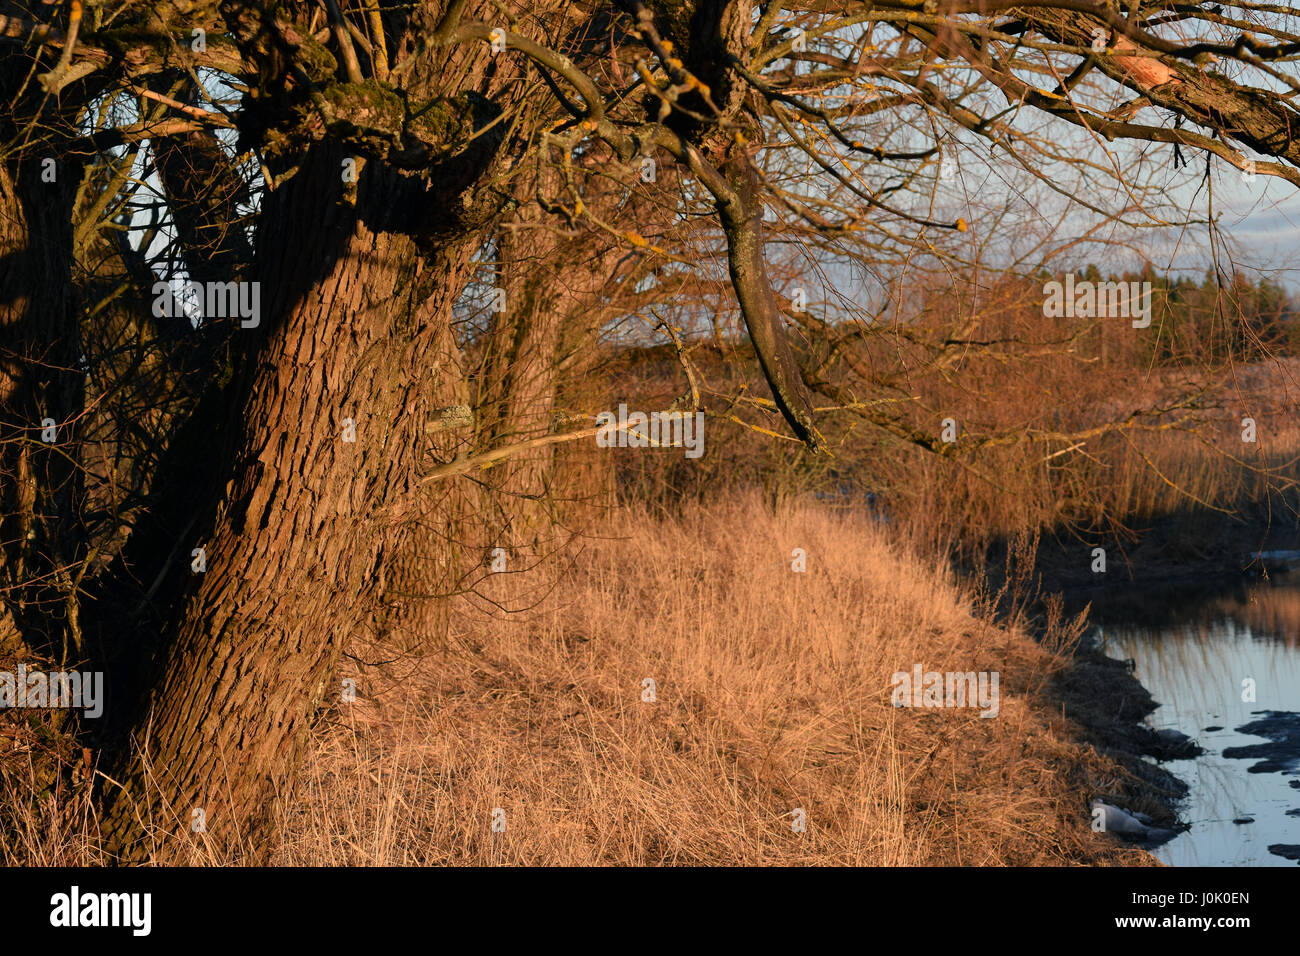 Trees on riverbank just before sunset. Horizontal image. - Stock Image